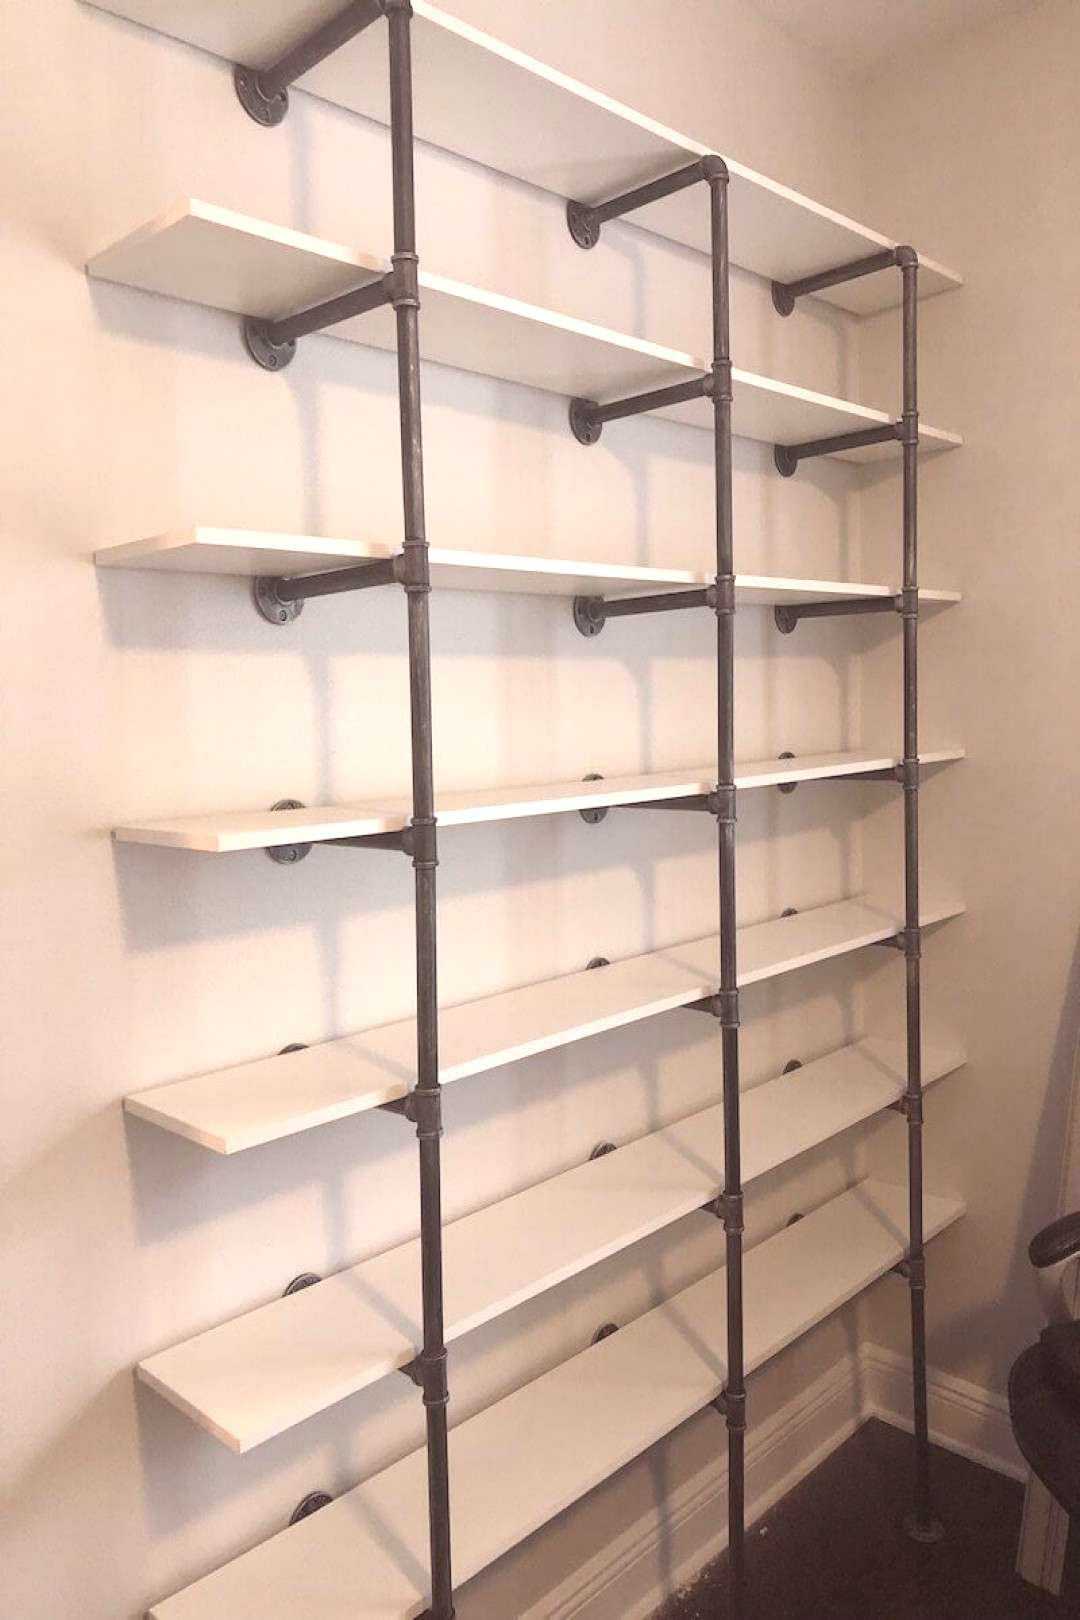 How to Make DIY Industrial Pipe Shelves DIY pipe shelves are a simple amp inexpensive way to add fun